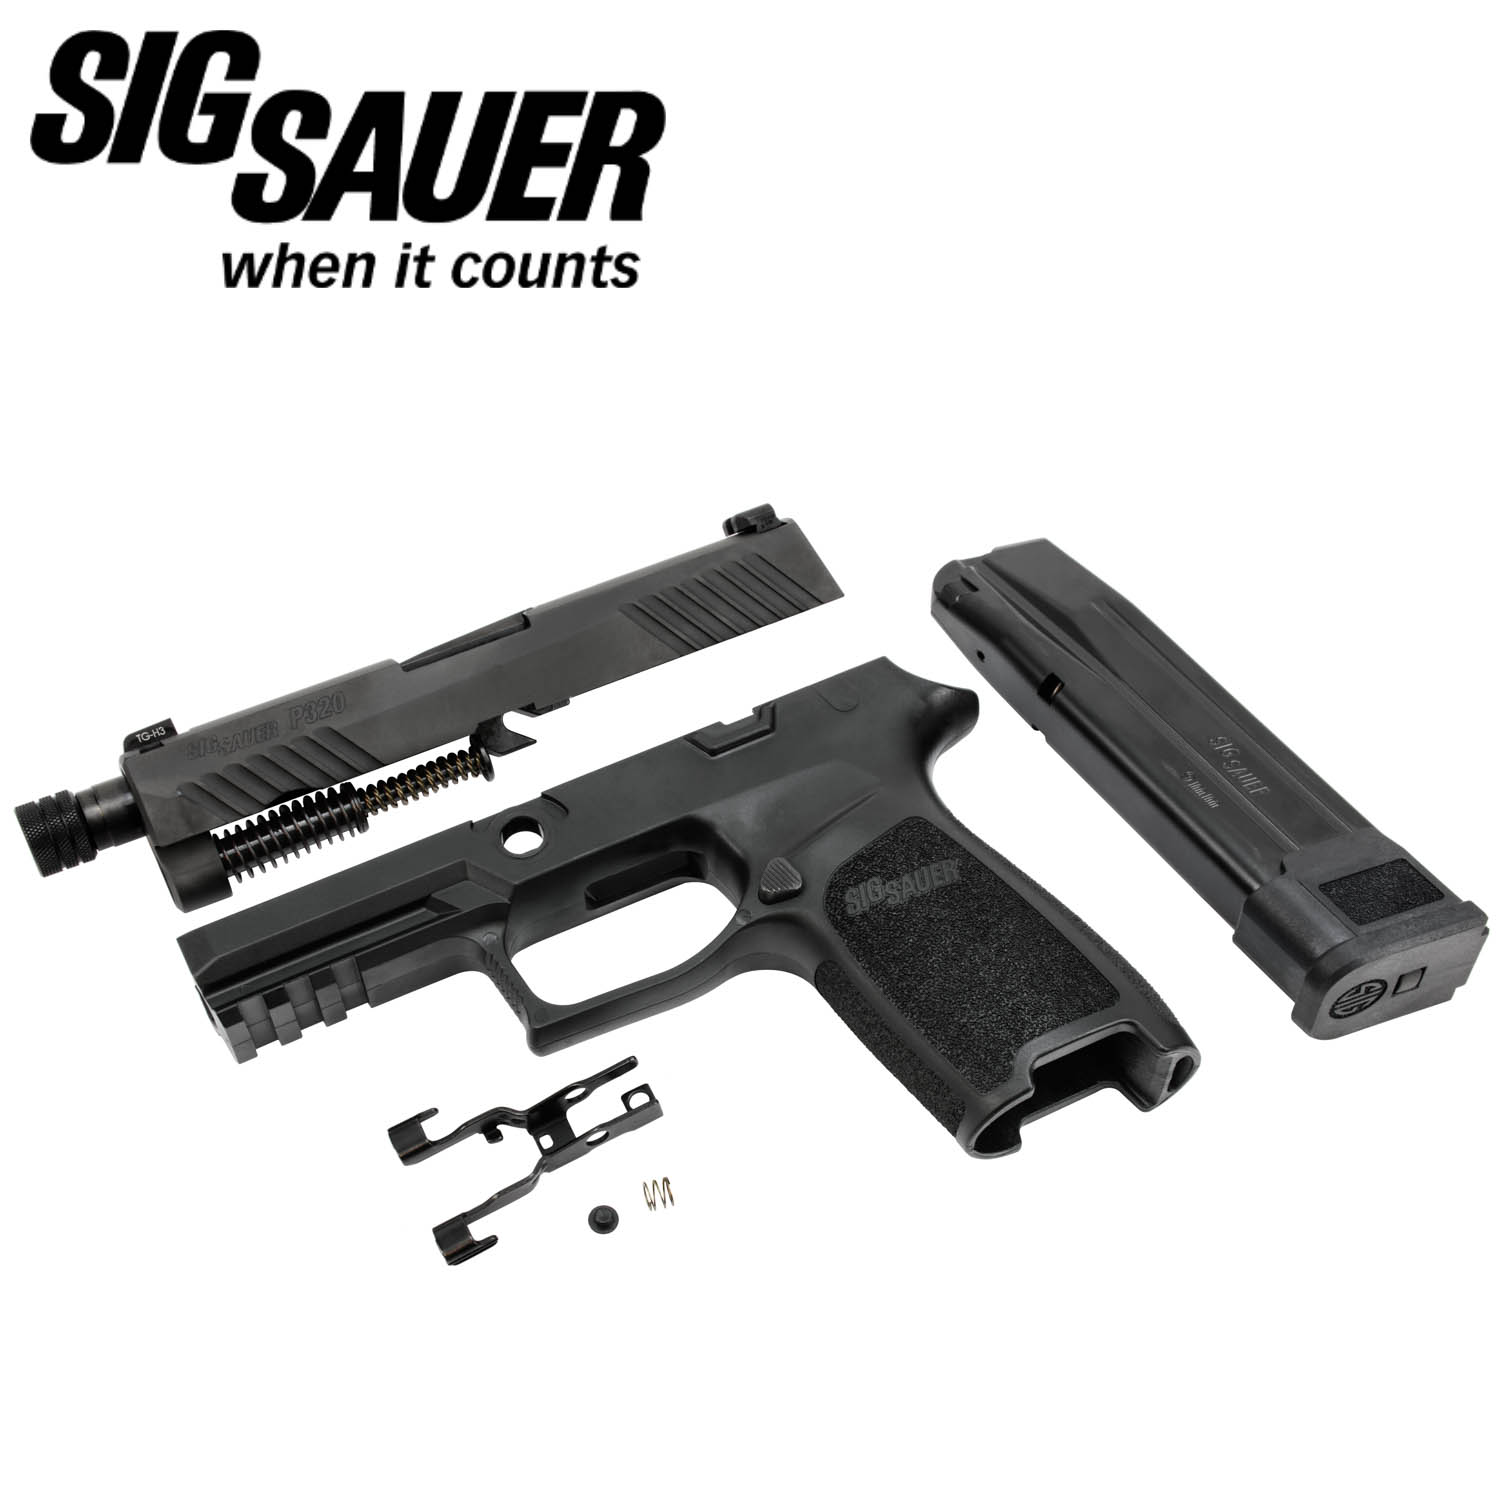 Sig Sauer P320 TACOPS Carry 9mm Caliber X-Change Kit, Threaded, Black:  Midwest Gun Works